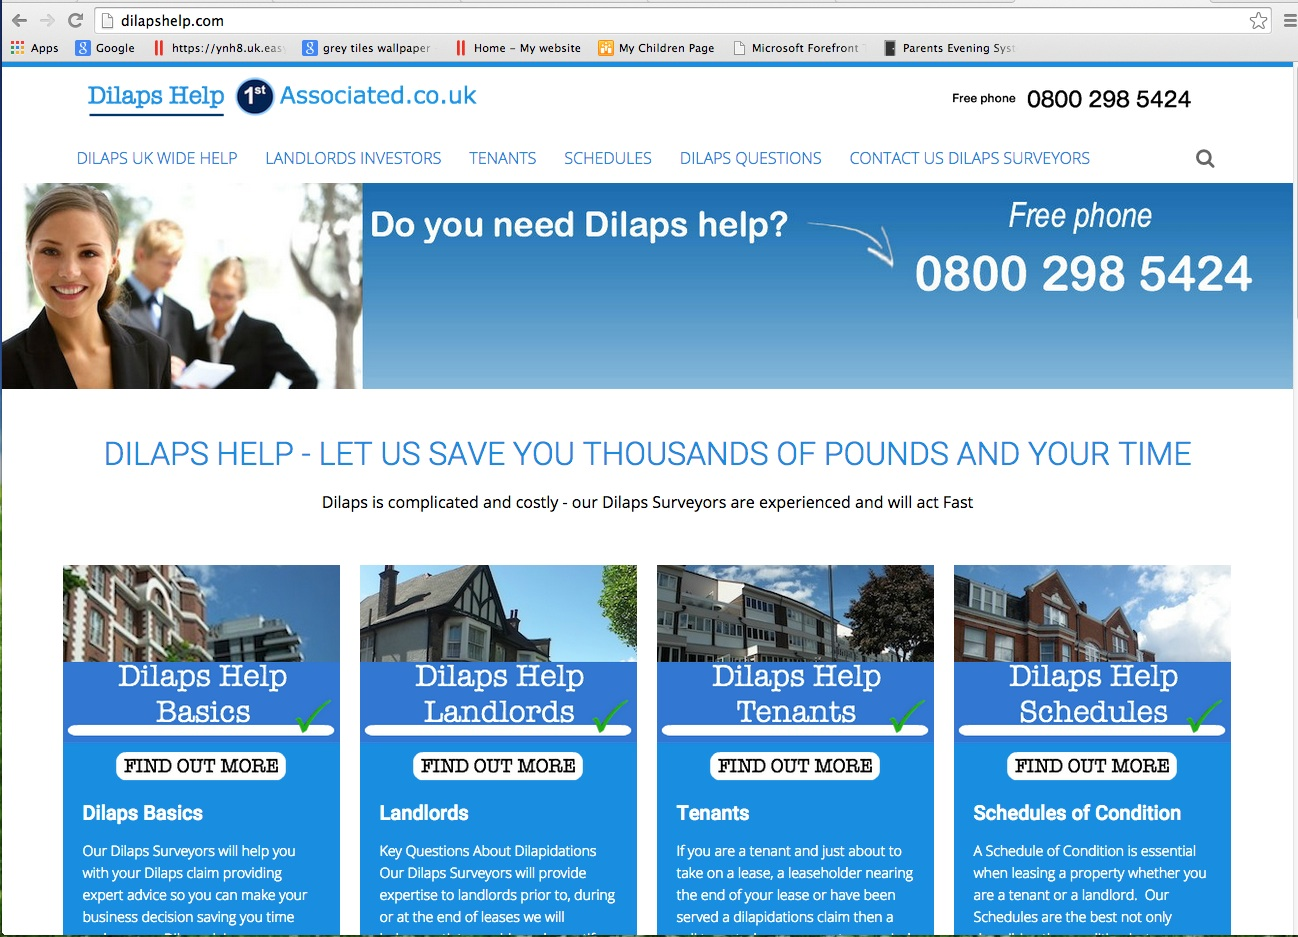 Website Brief - DilapsHelp.com